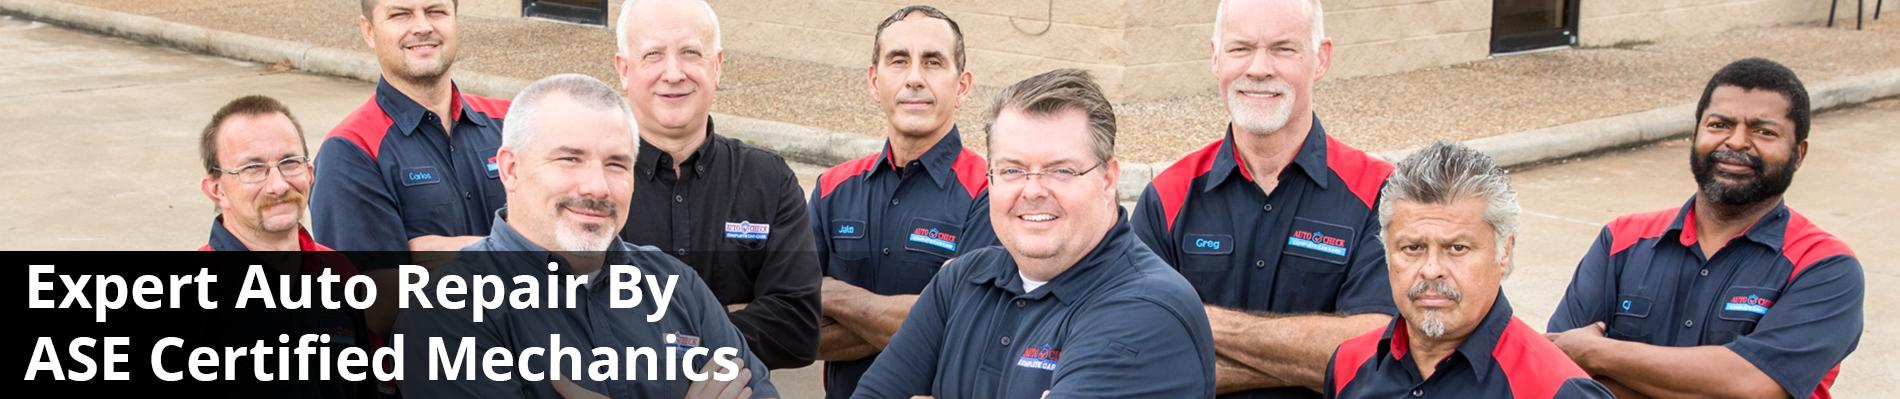 Expert Auto Repair by ASE Certified Technicians